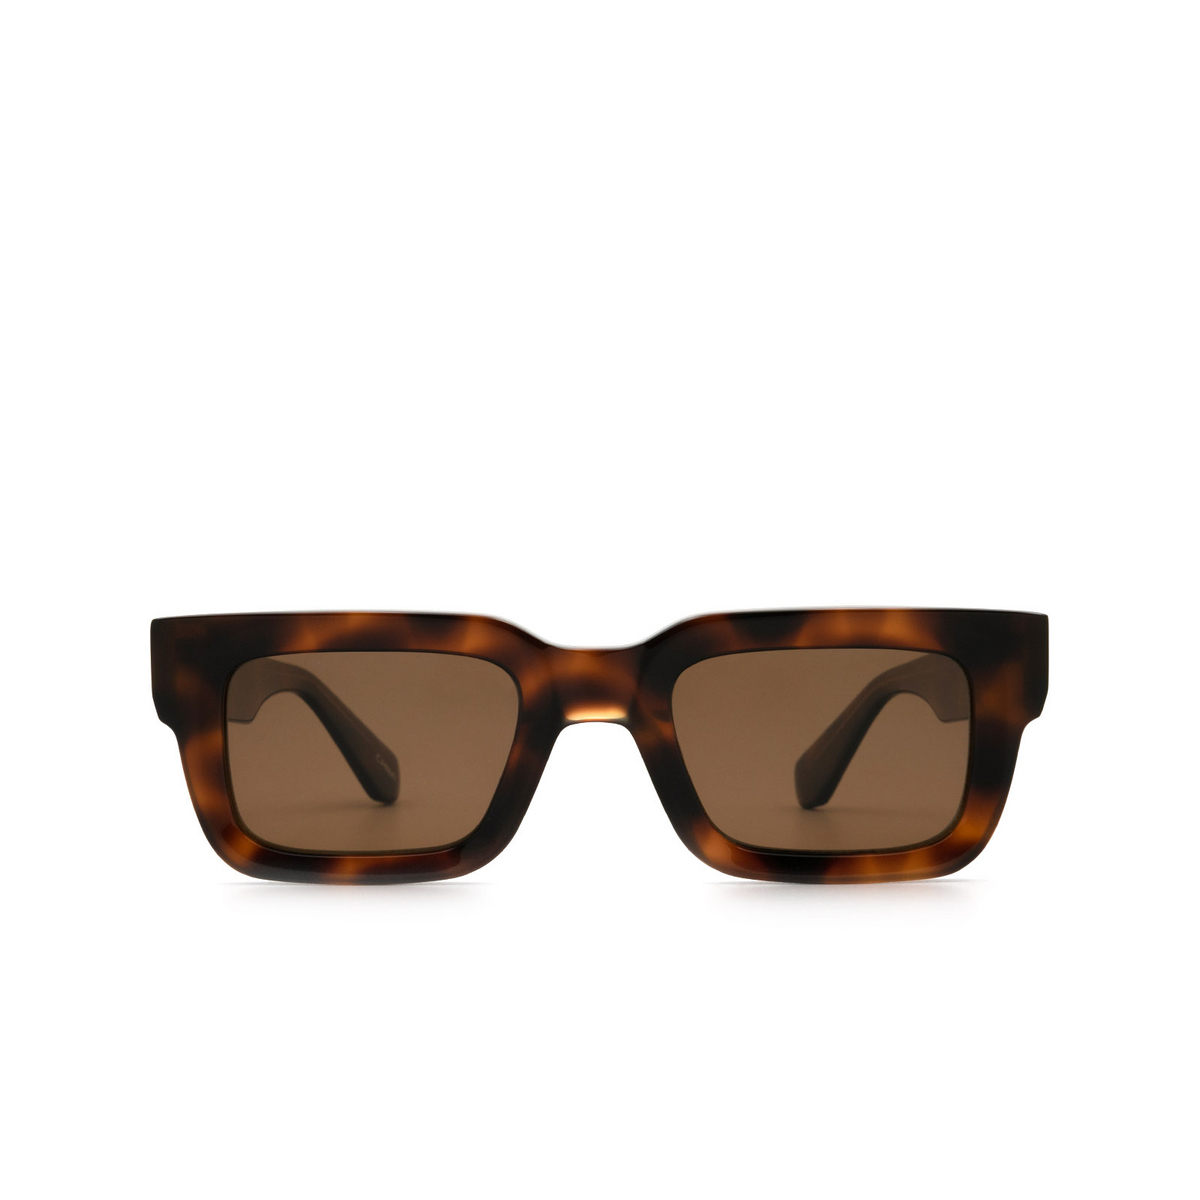 Chimi® Rectangle Sunglasses: 05 color Tortoise - front view.